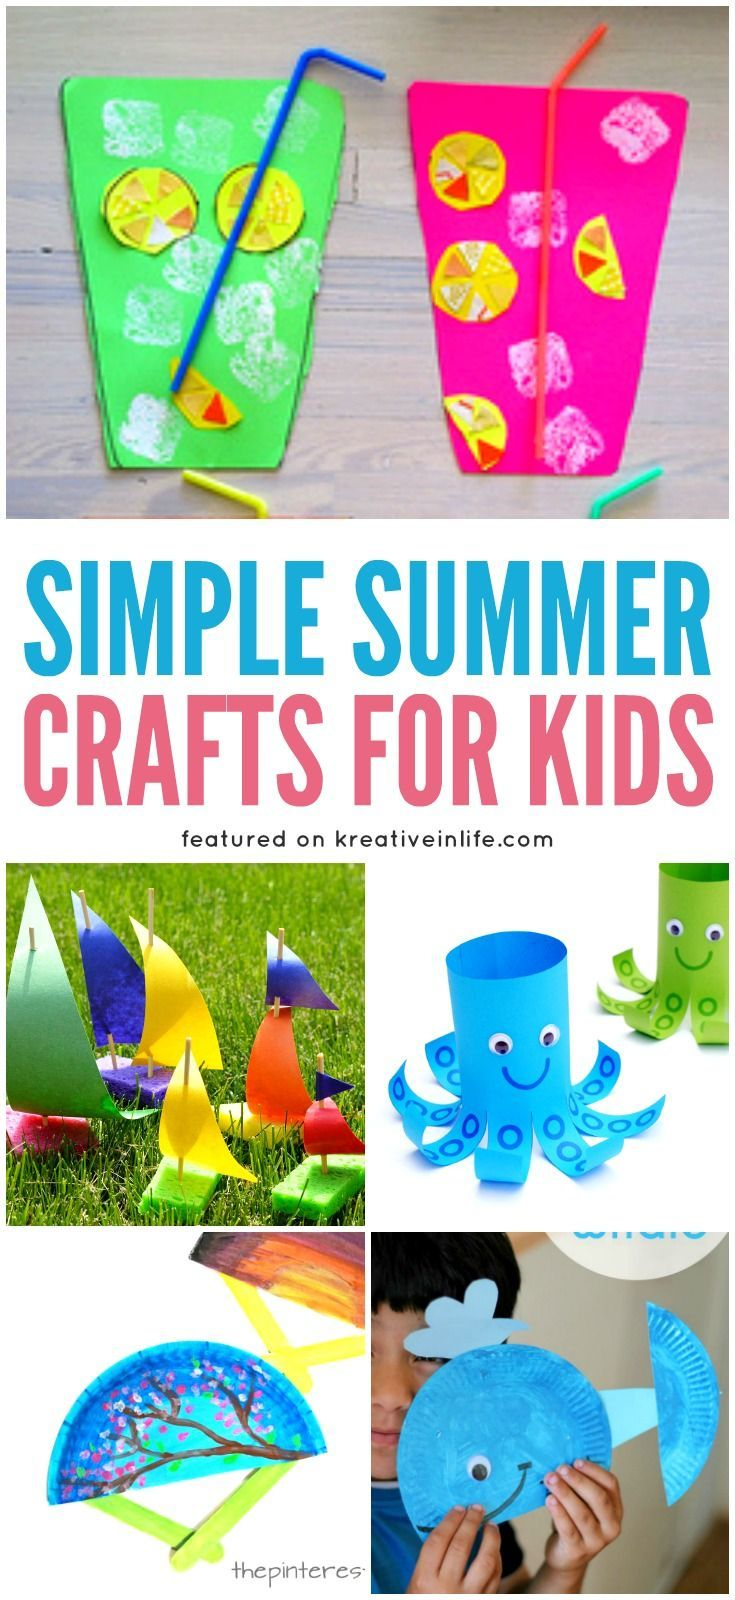 Simple Summer Crafts For Kids Arts And Crafts Summer Arts